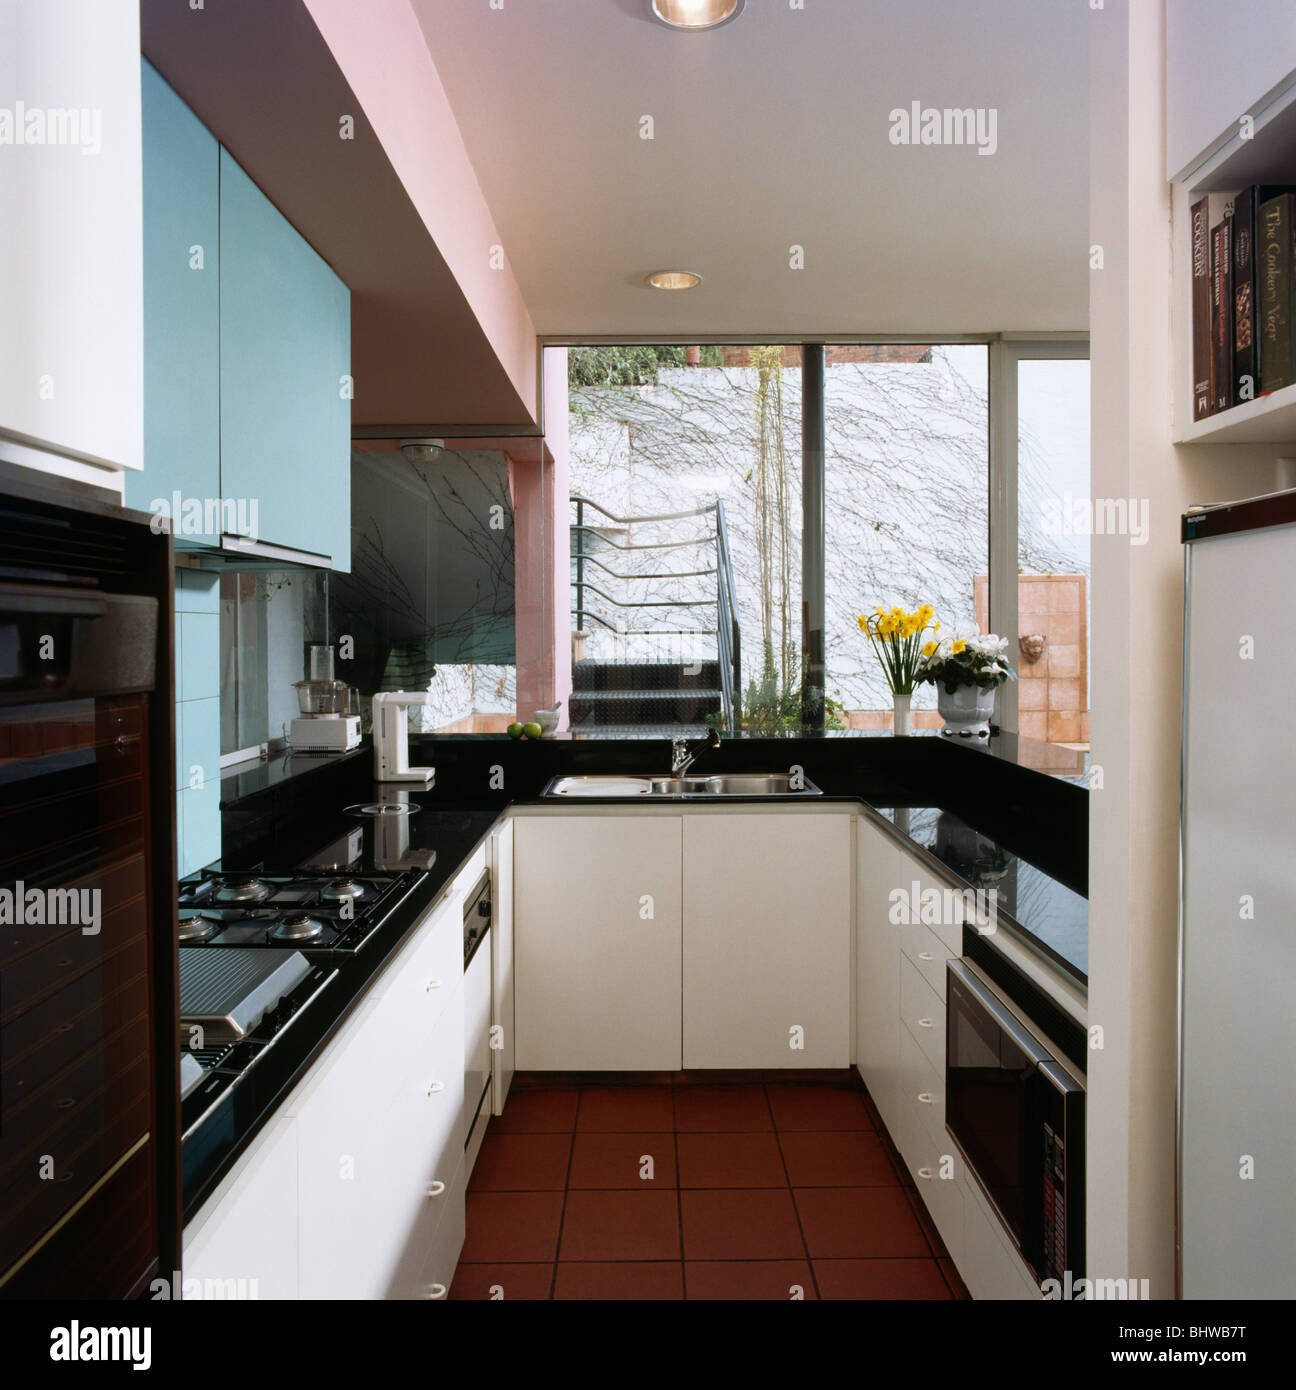 Black Worktops In Modern Kitchen With Pale Blue And White